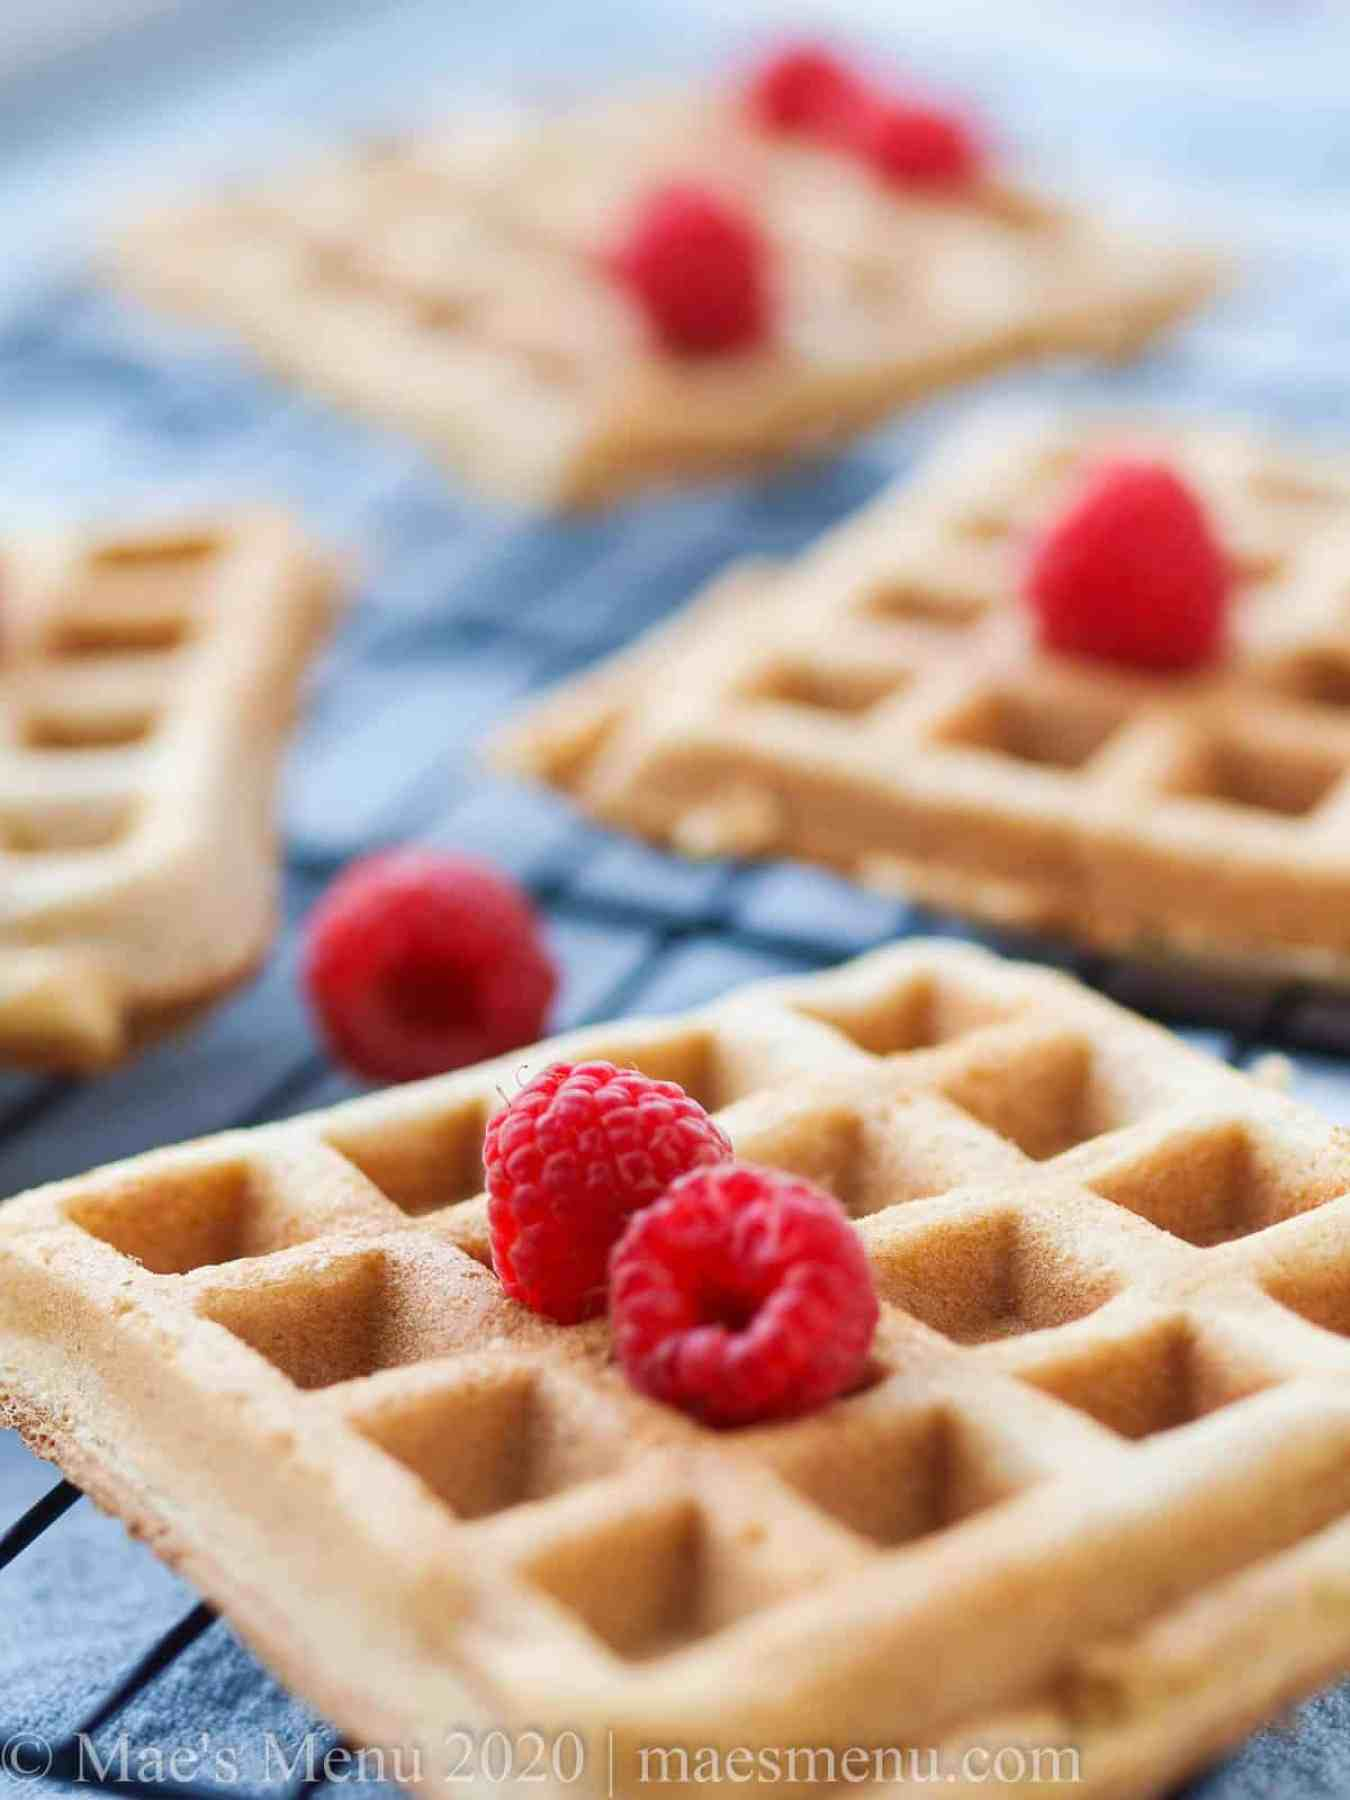 Crispy and fluffy whole wheat belgian waffles on a cooling rack.